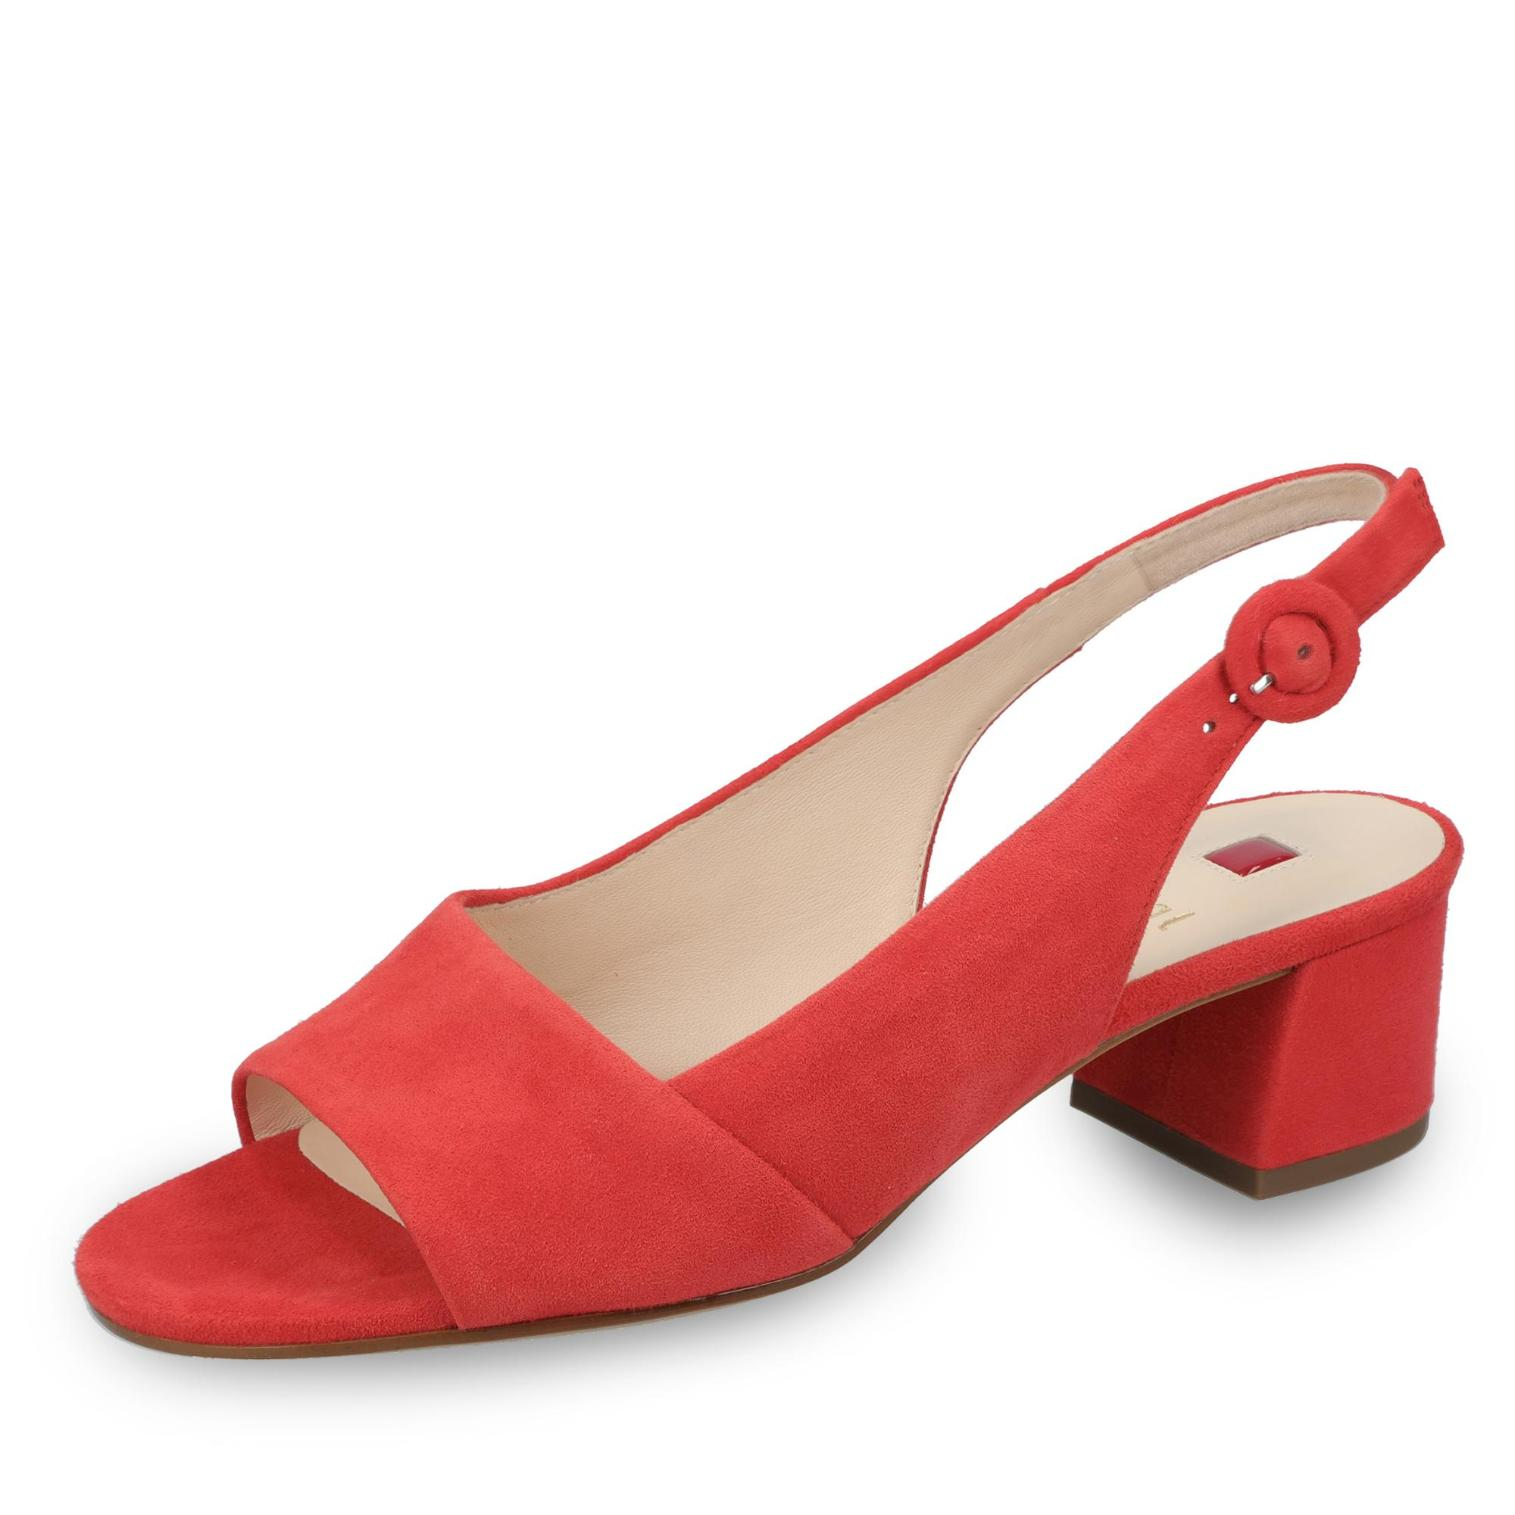 official photos 56c0a 915cd Högl Sandalette in Farbe rot um 34% reduziert online kaufen